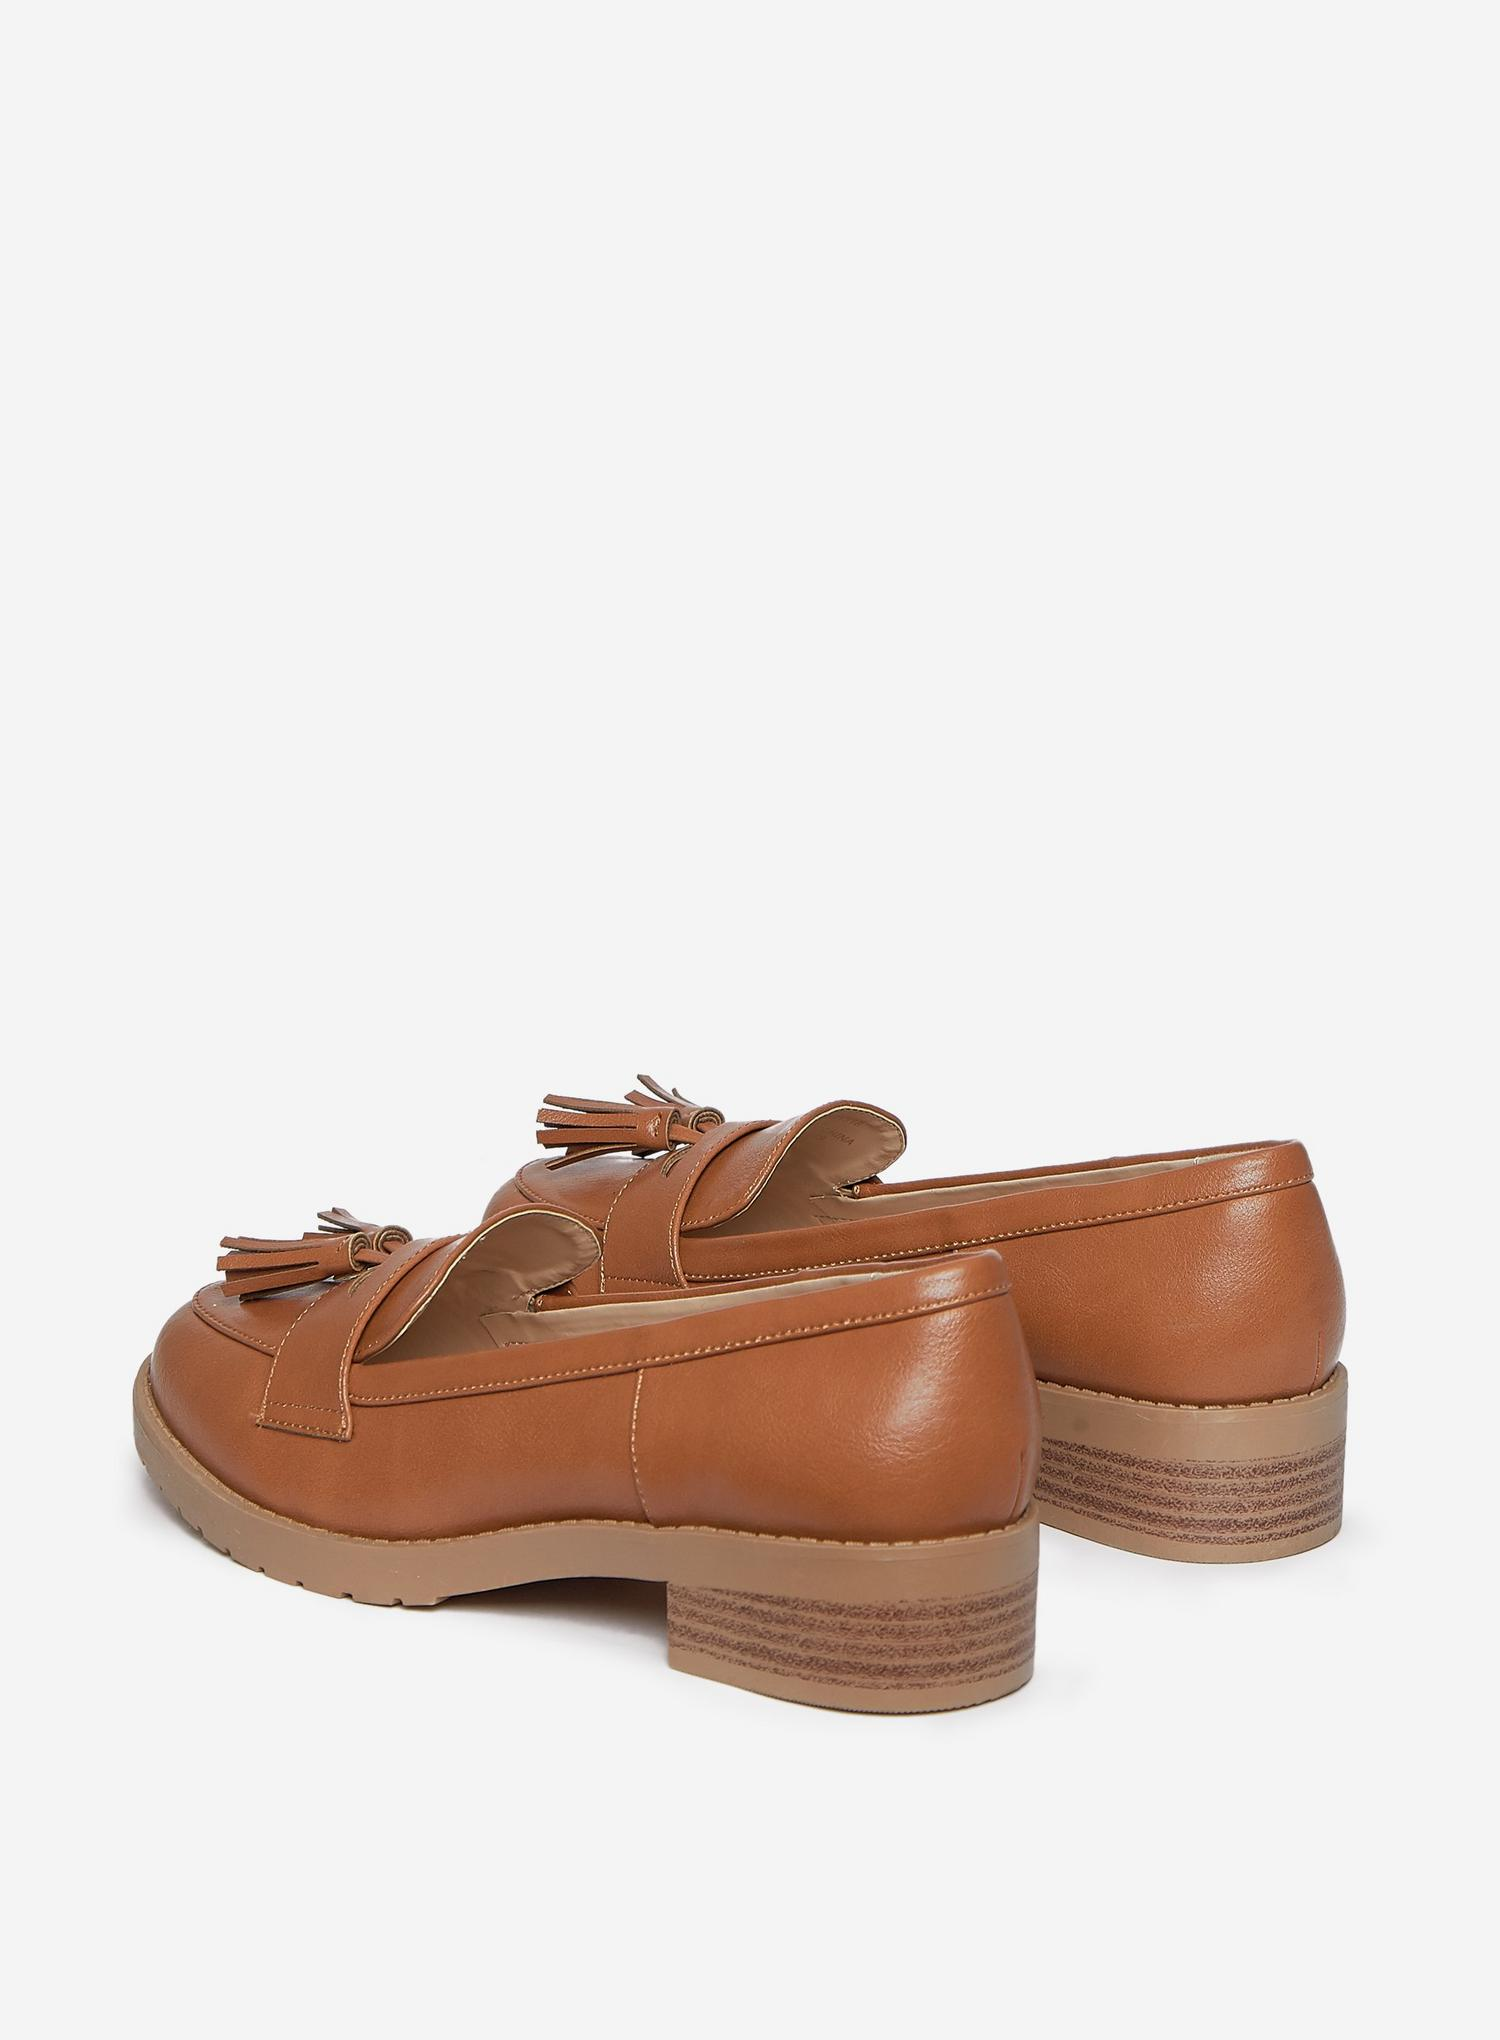 109 Wide Fit Tan Litty Loafers image number 4